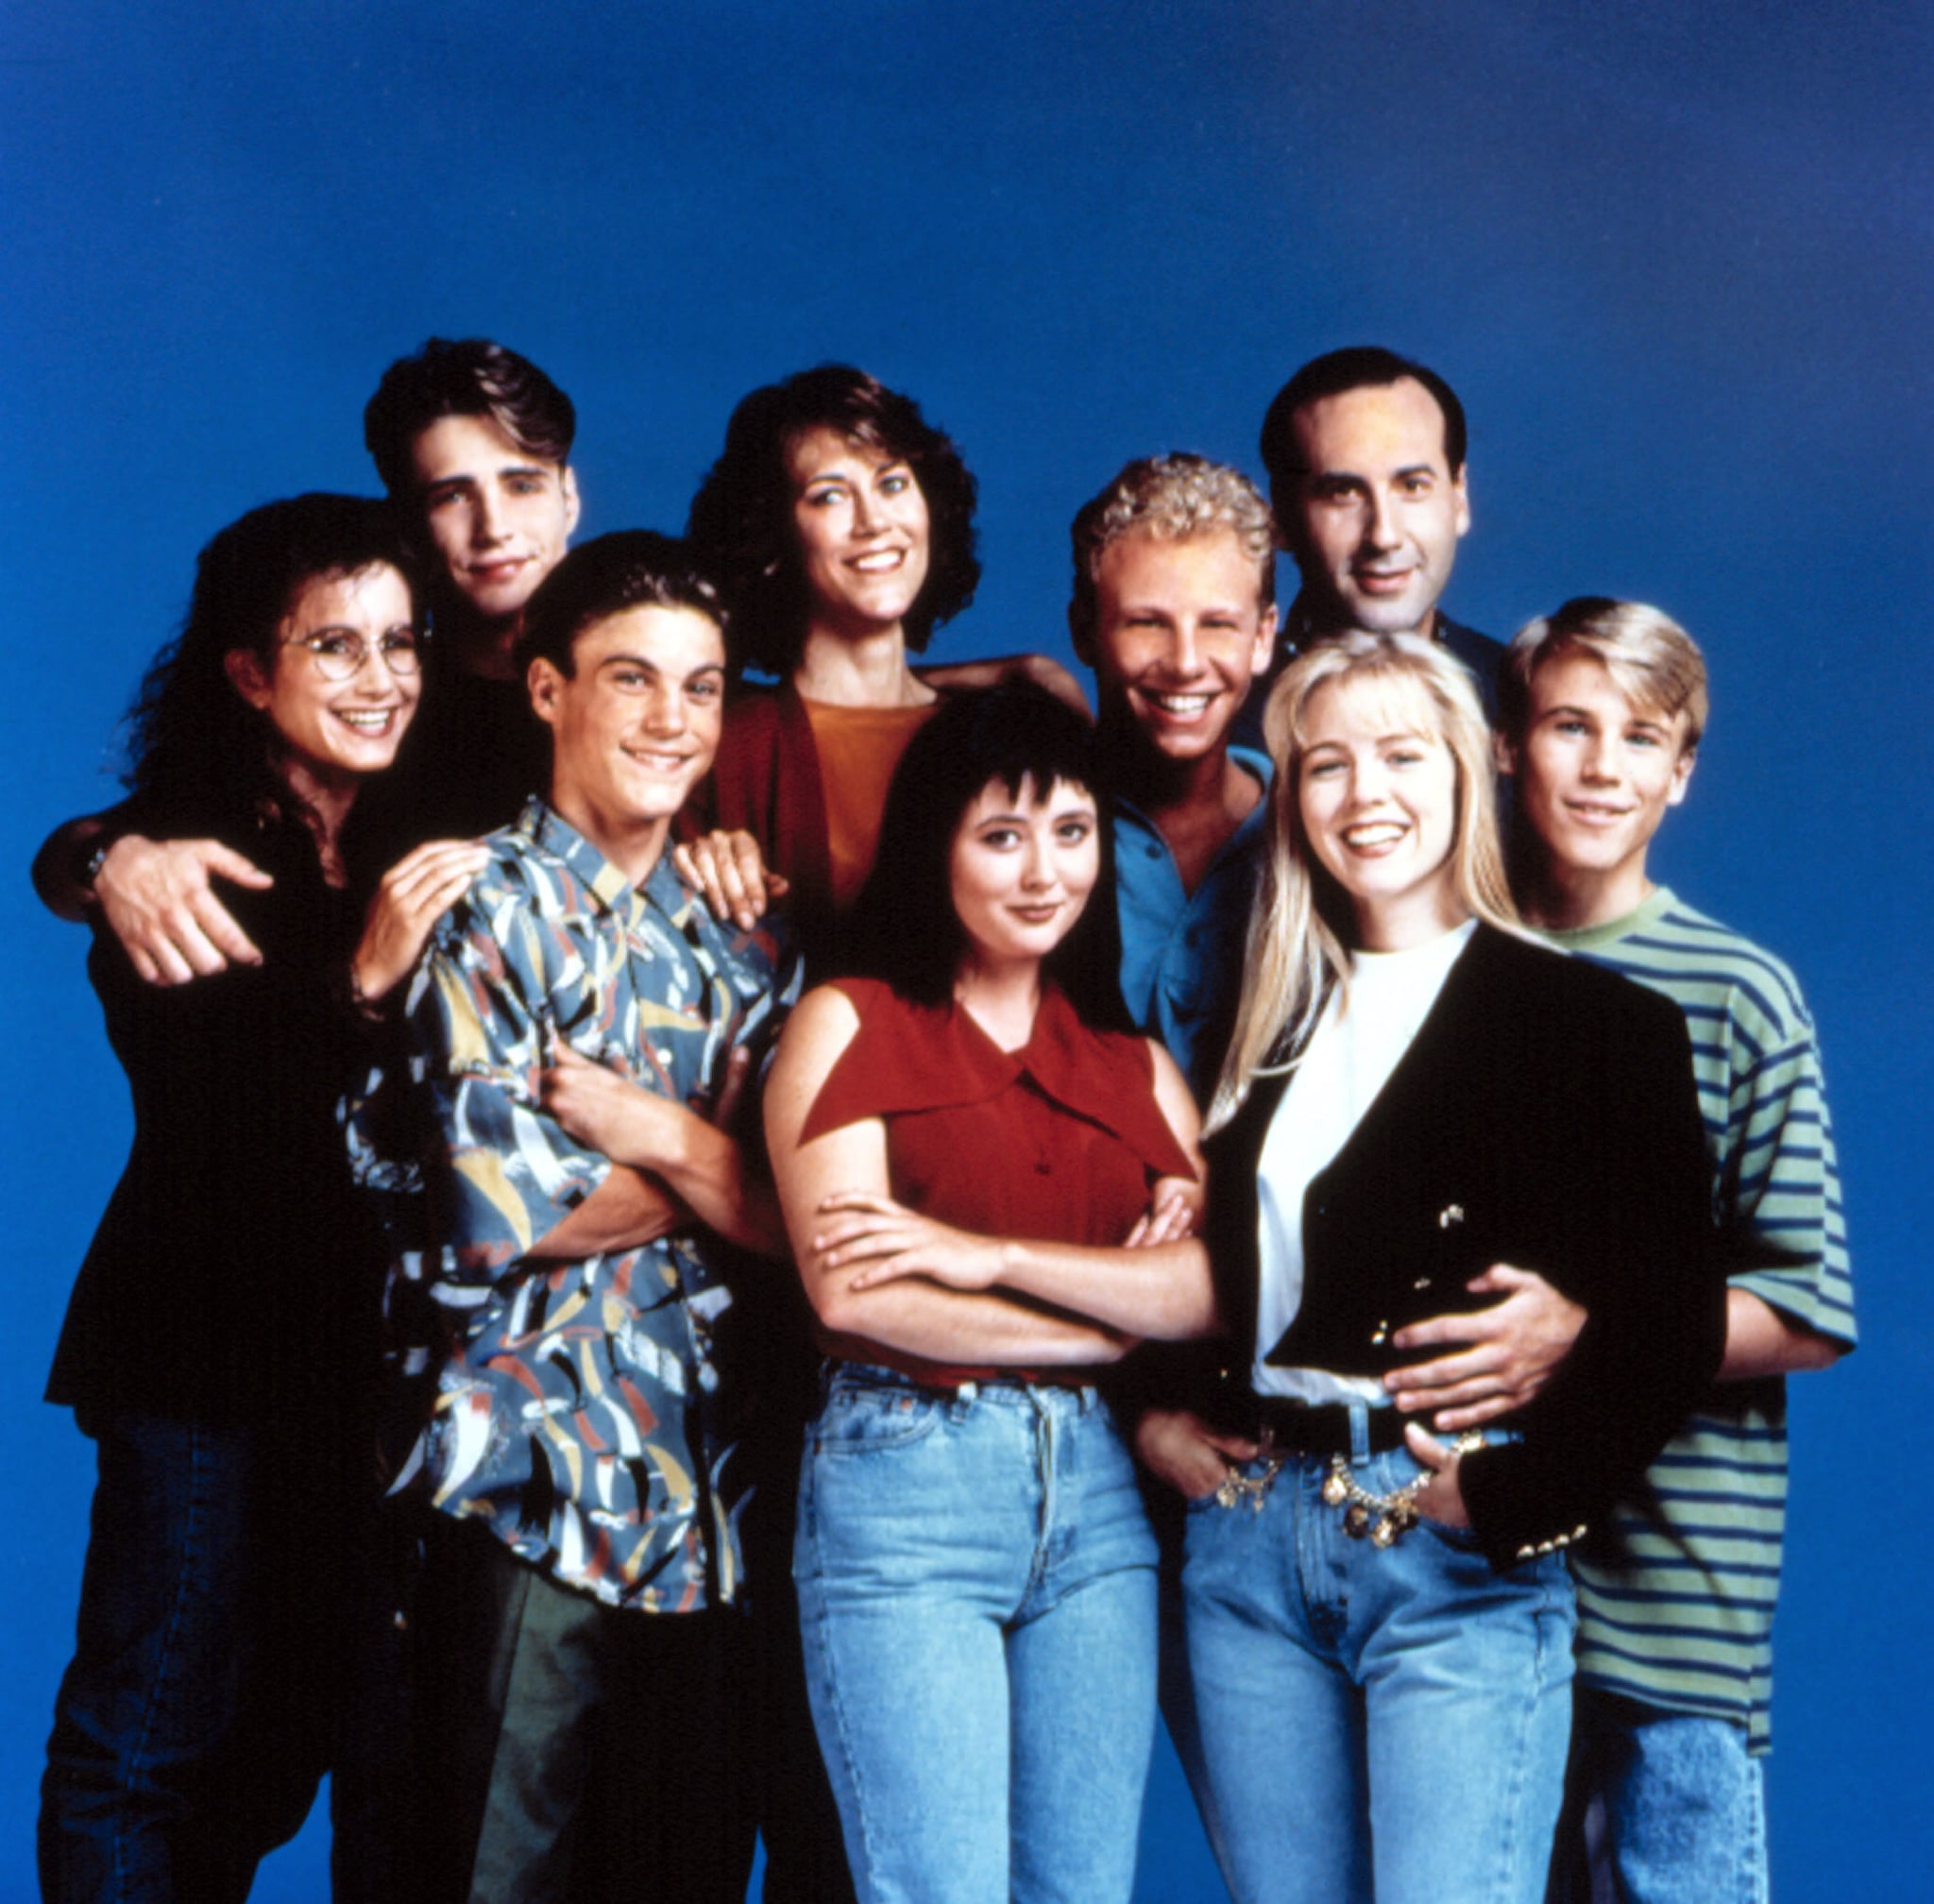 BEVERLY HILLS, 90210, Gabrielle Carteris, Jason Priestley, Brian Austin Green, Carol Potter, Shannen Doherty, Ian Ziering, Jennie Garth, James Eckhouse, Douglas Emerson, (Season 1, 1990), 1990-2000, (c)Spelling Television/courtesy Everett Collection